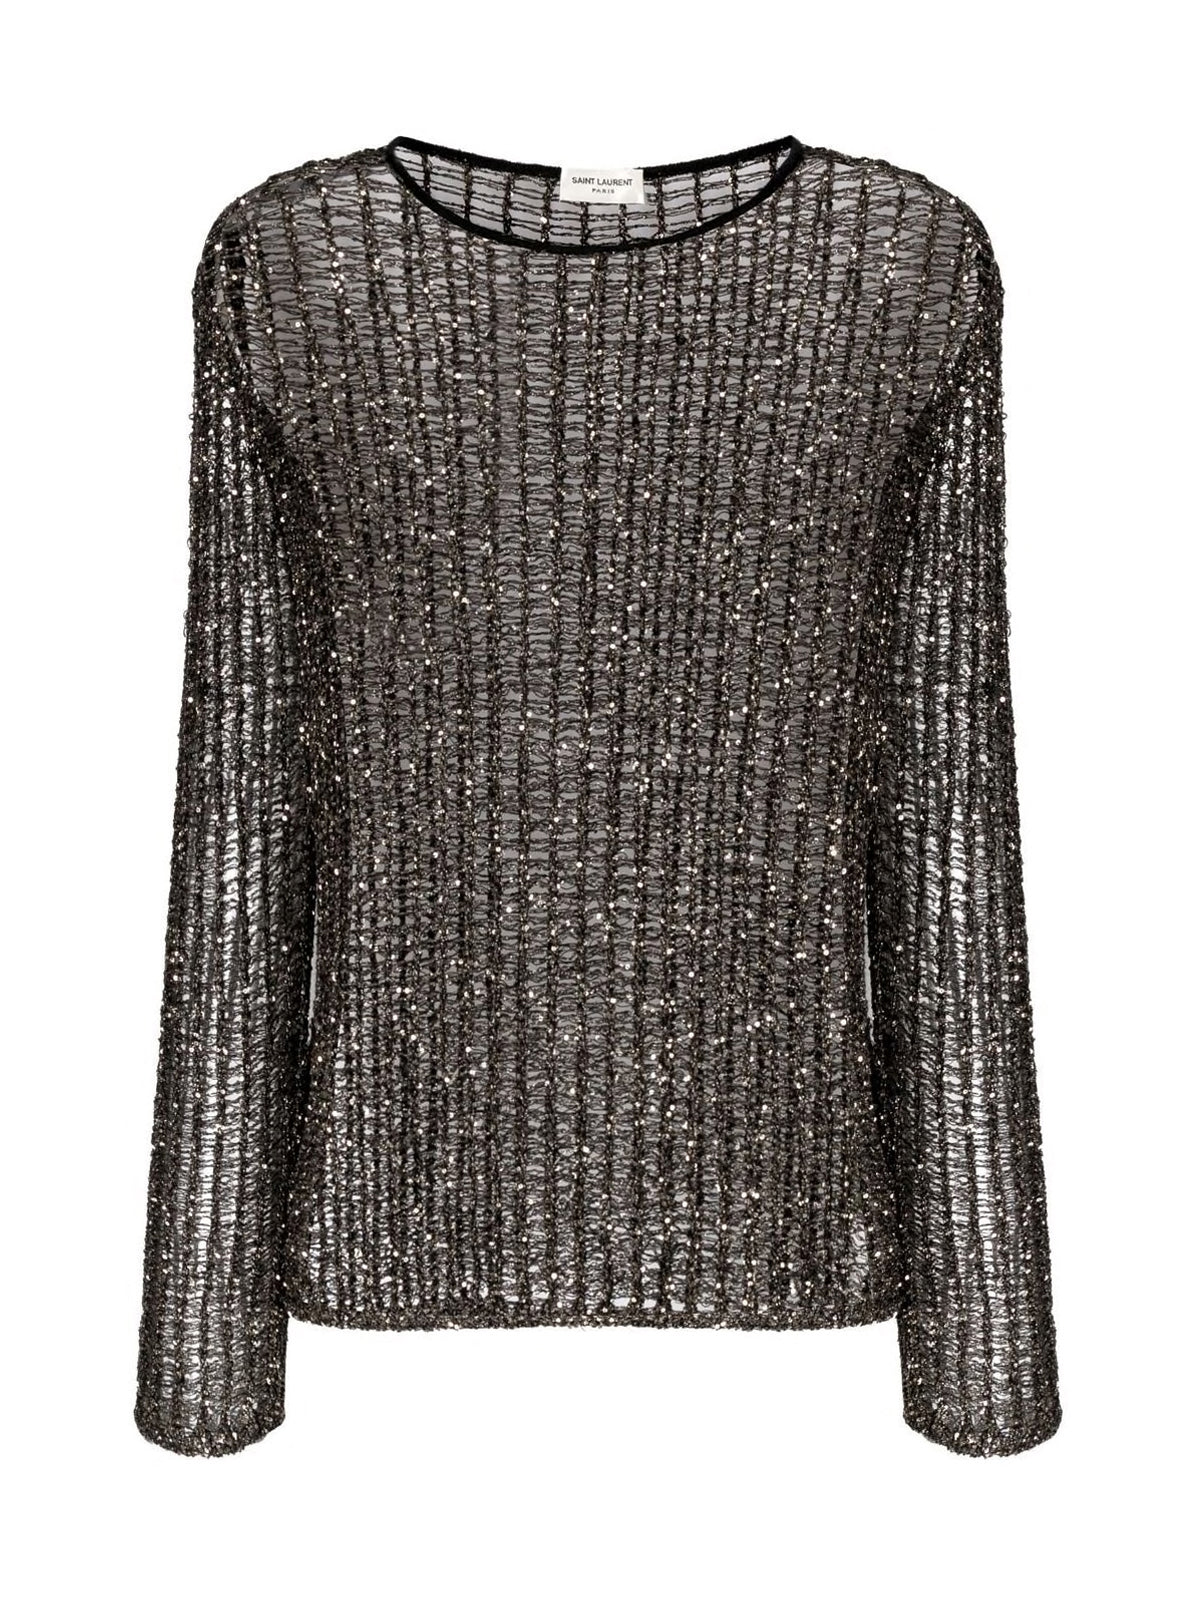 sequin-embellished ladder knit top